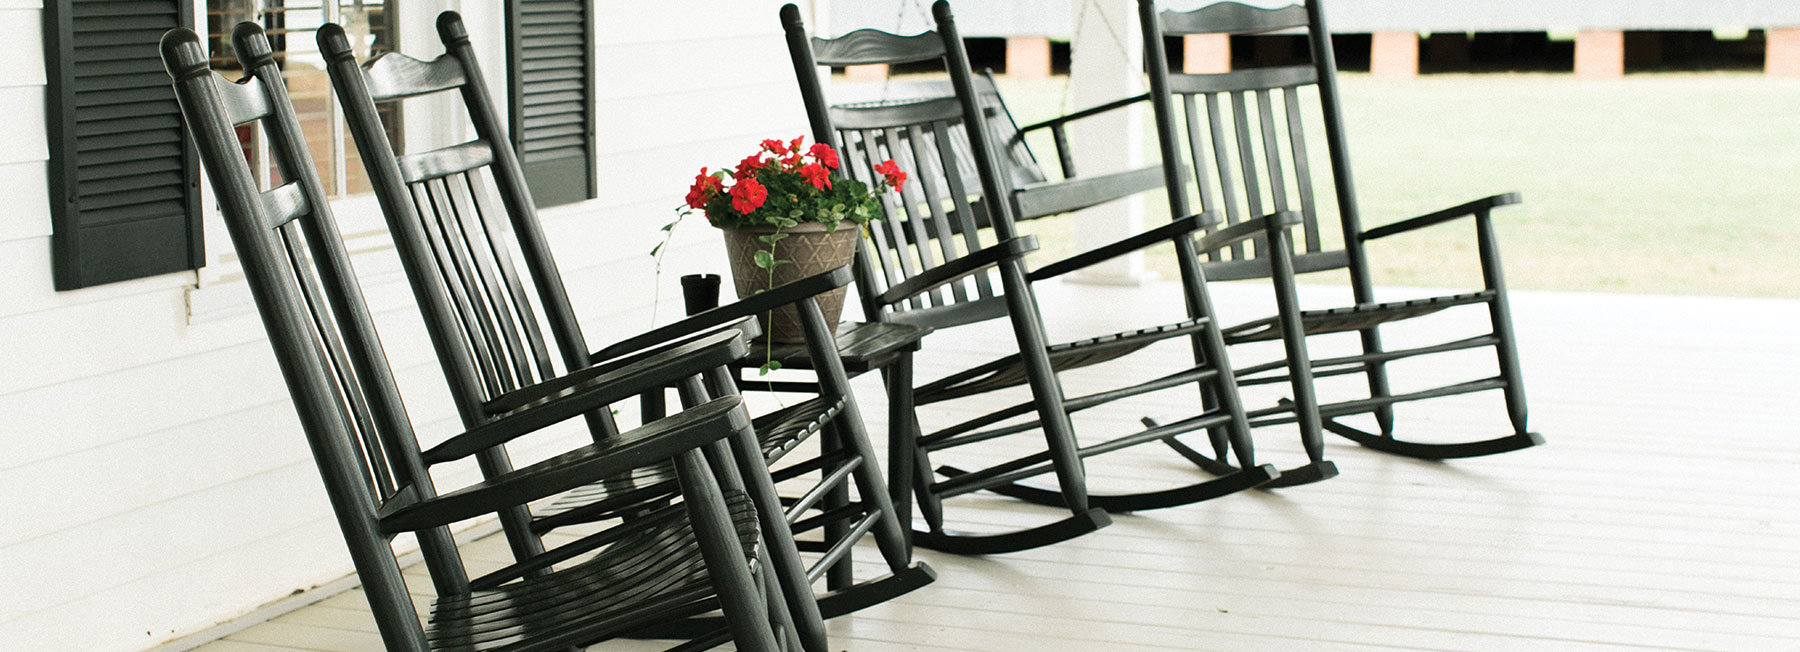 Rocking Chairs on Porch - The Peach Pelican